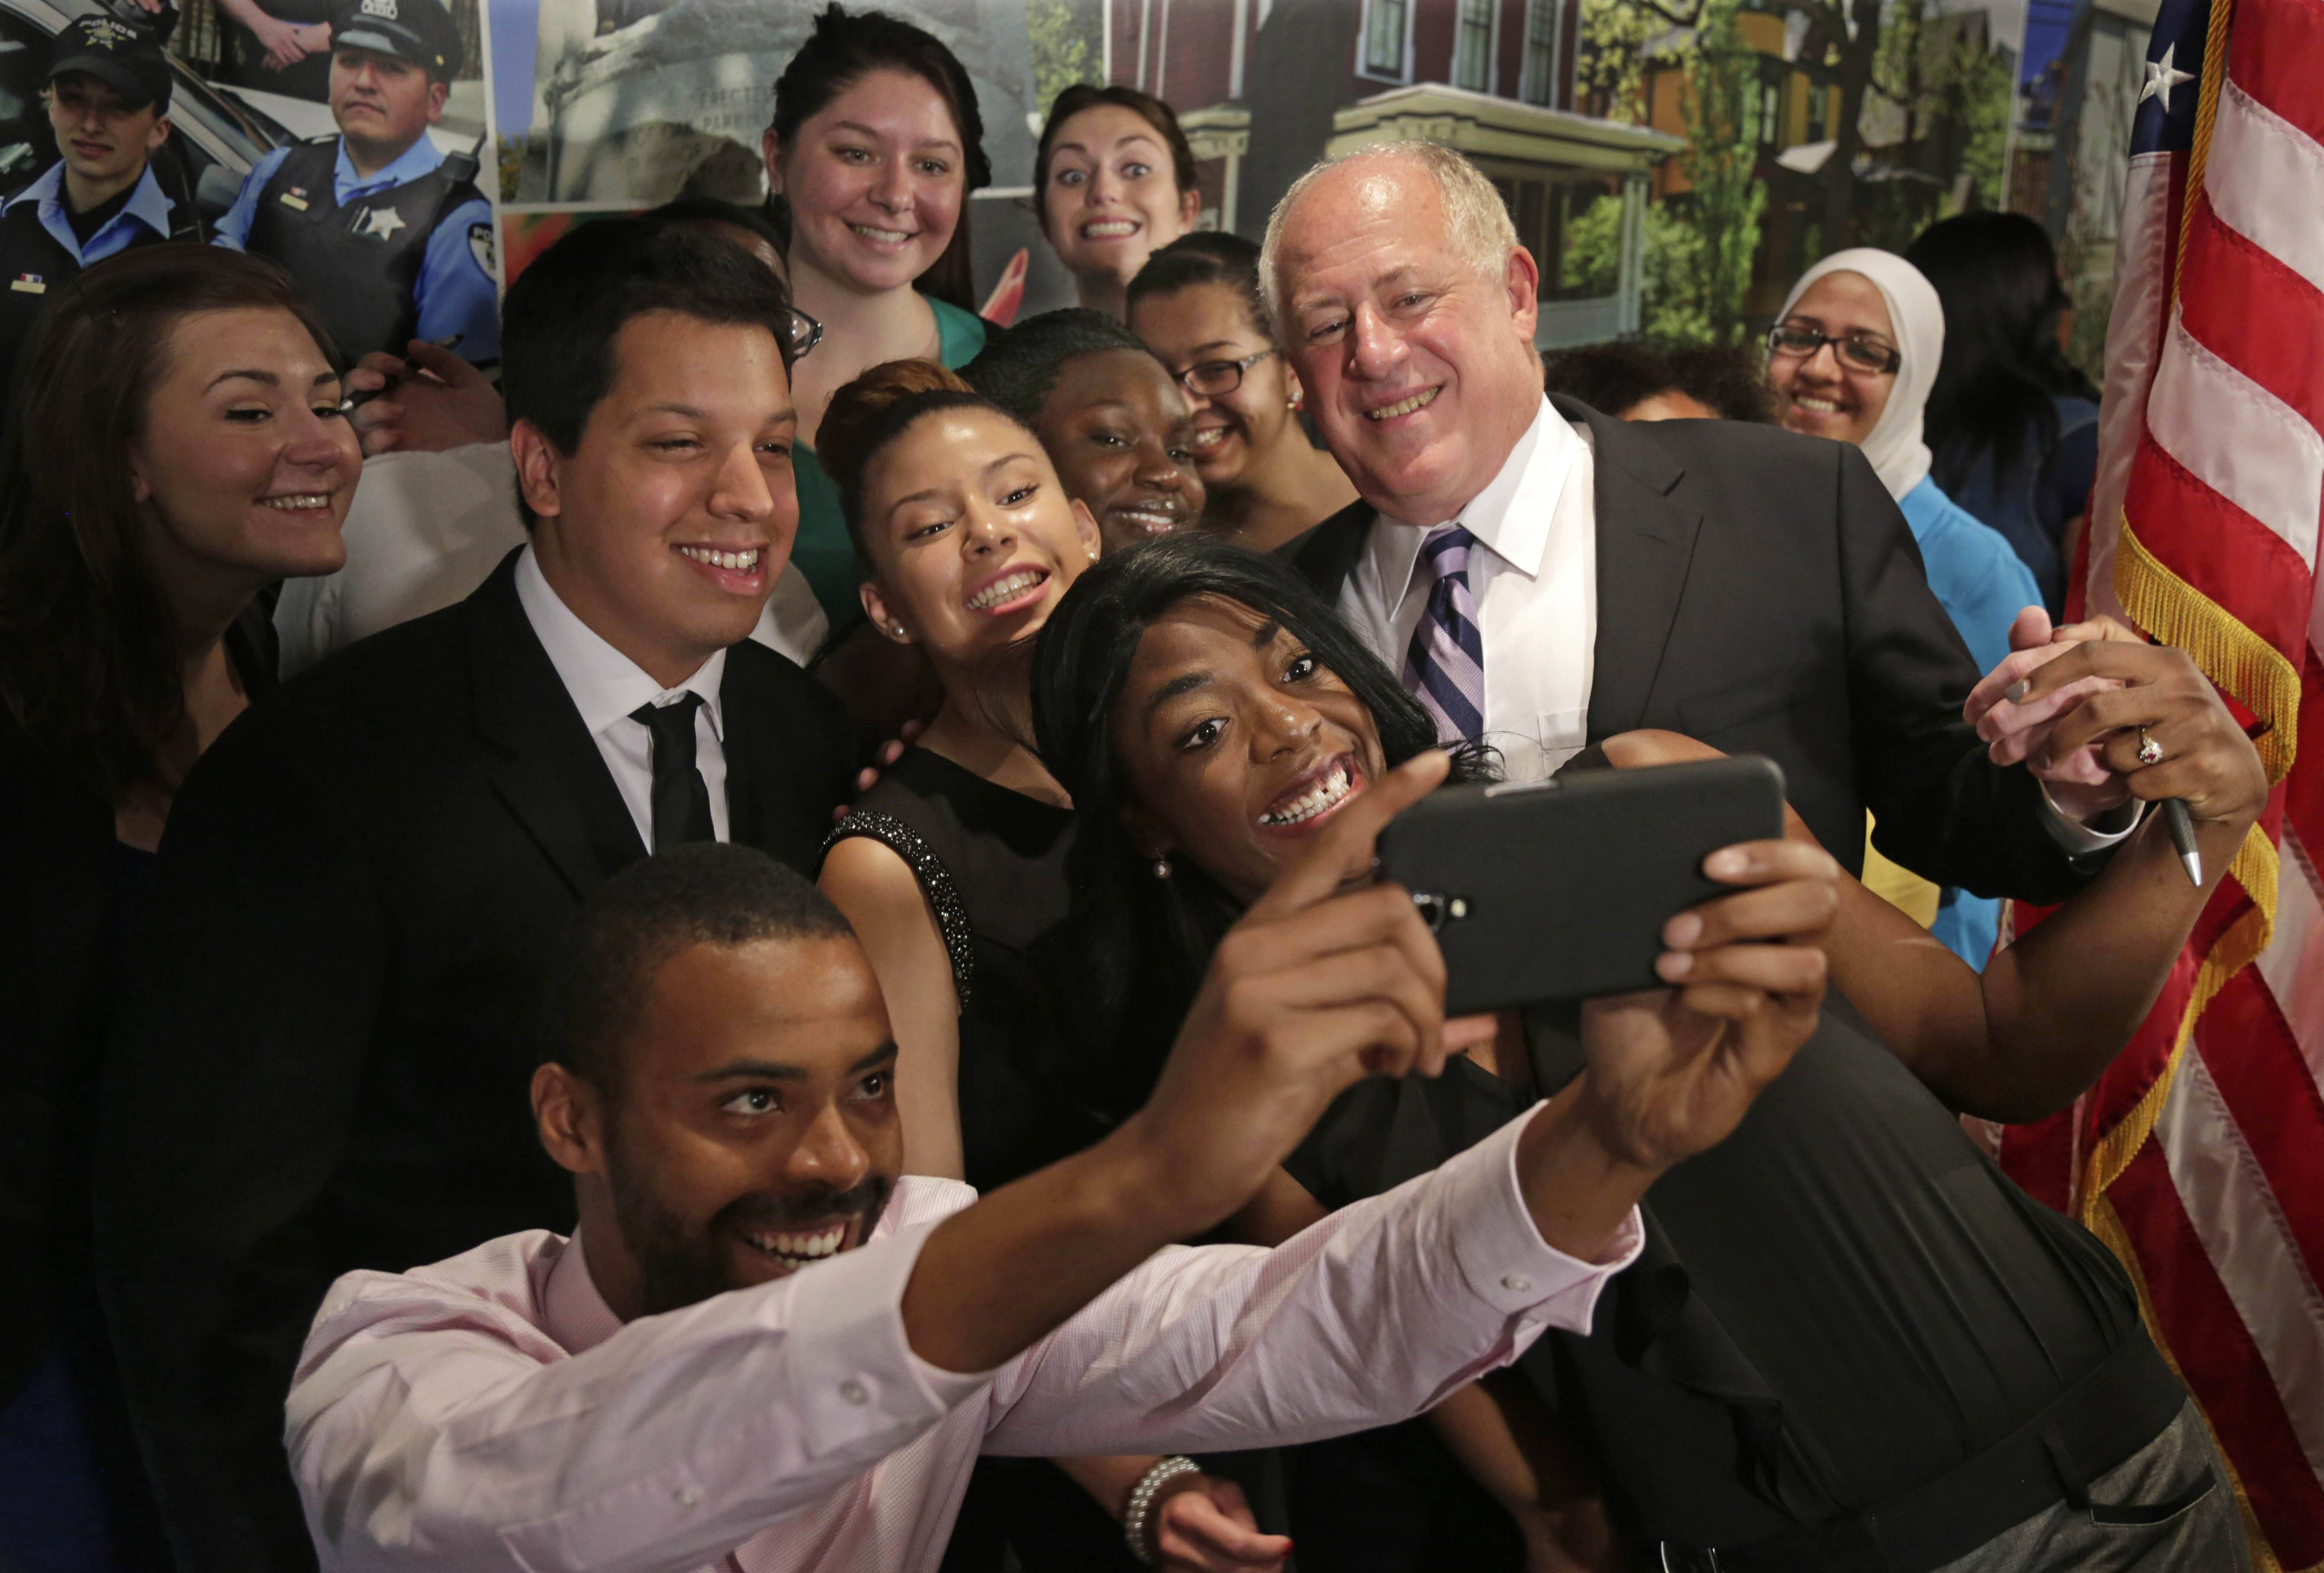 Gov. Pat Quinn poses for photos after signing a bill that will allow Illinois voters to register on Election Day, have more time to vote early, and not be required to bring photo identification to vote early Tuesday in Oak Park. The new law only applies to the November election.